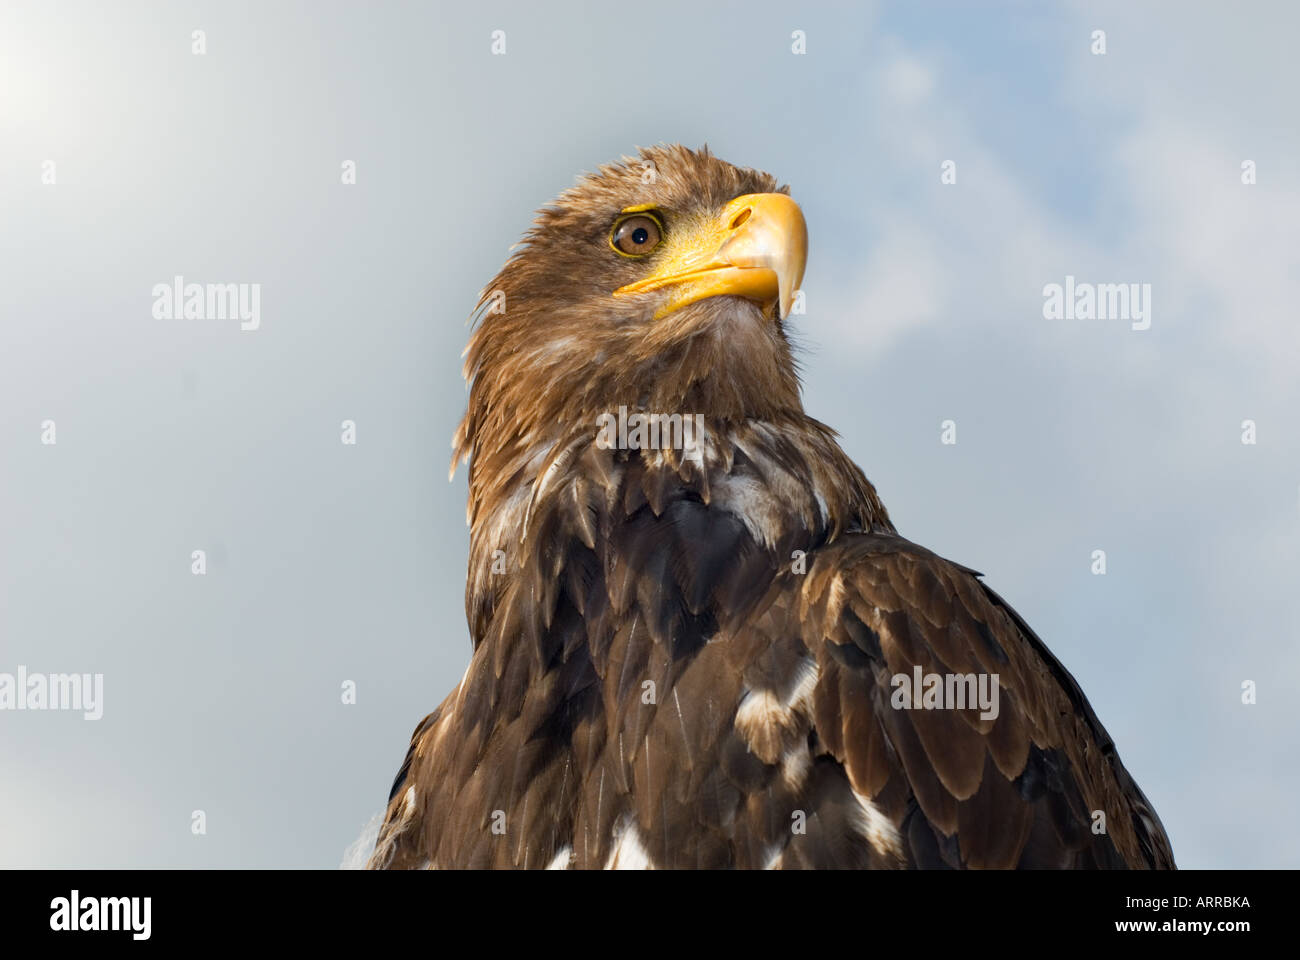 BUZZARD head south america eagle - Stock Image